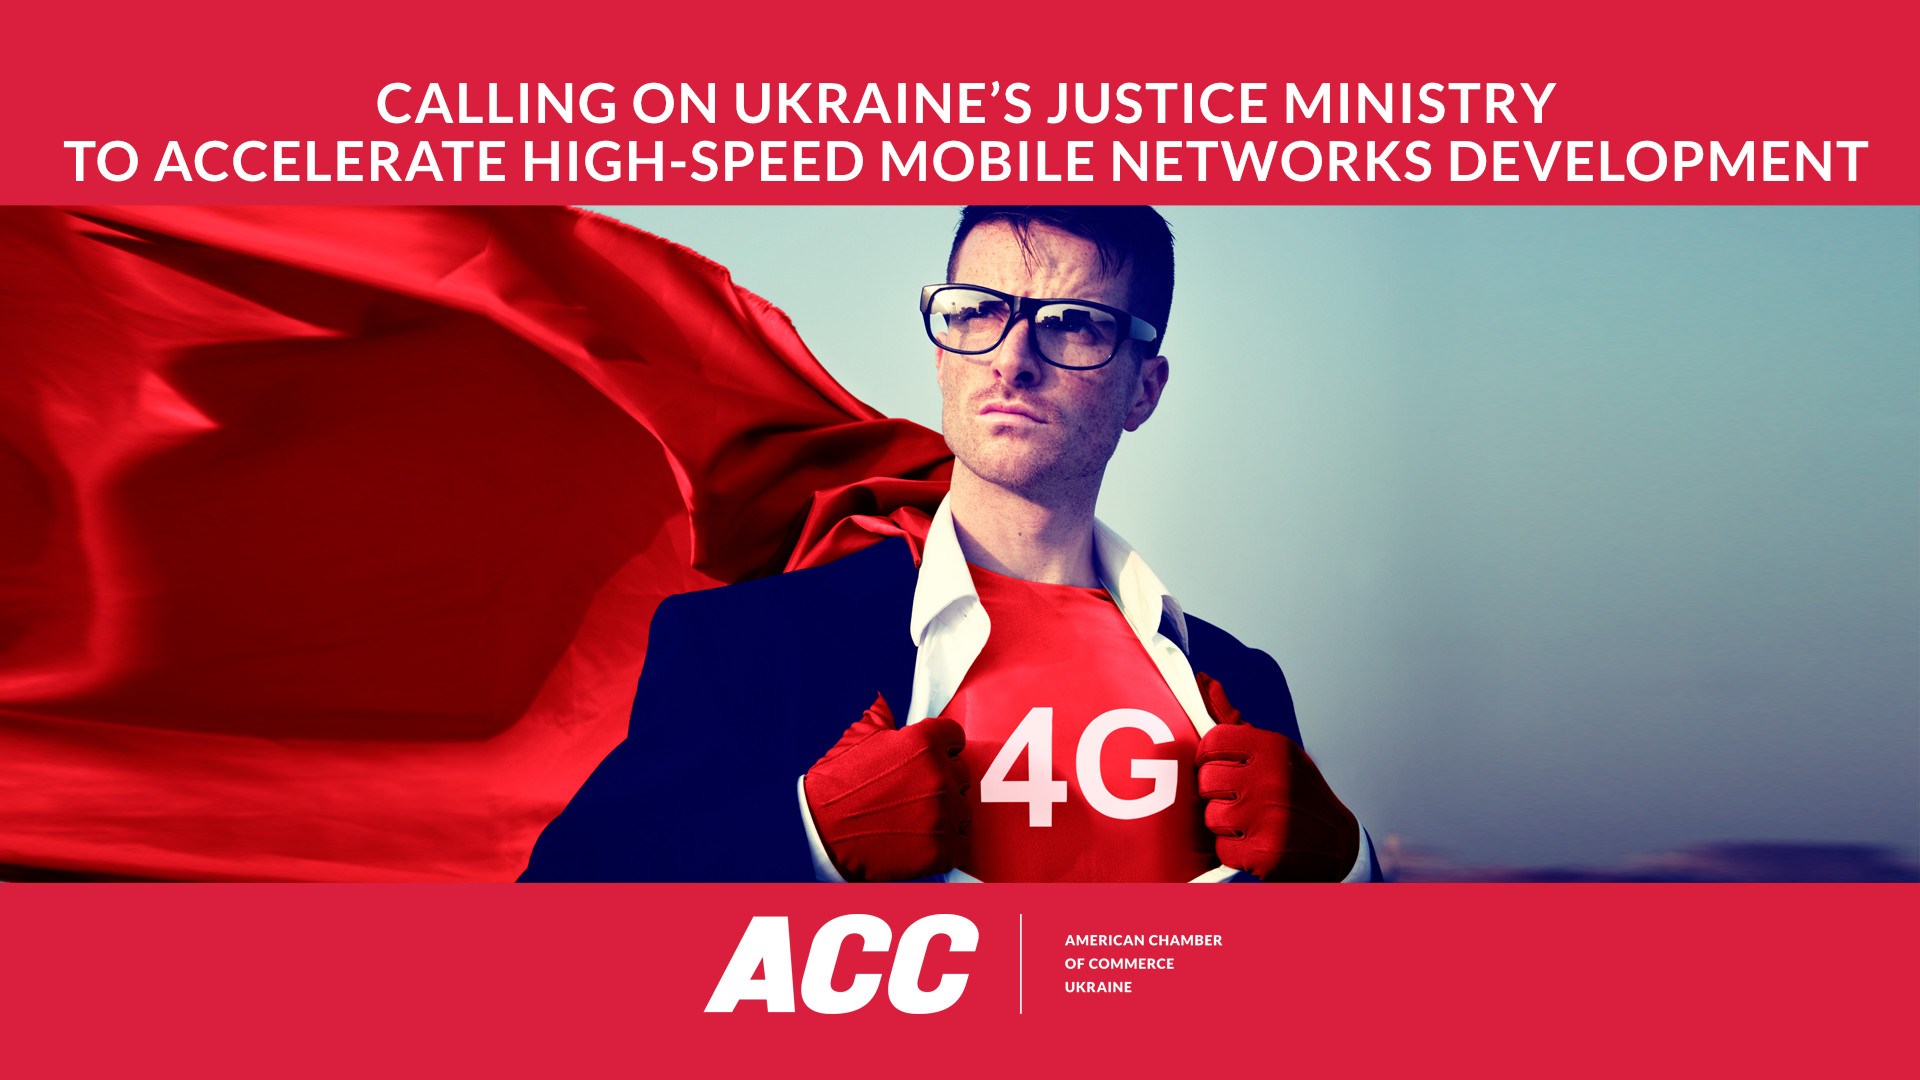 AmCham Ukraine Calls on Justice Ministry to Register Health Ministry's Order to Accelerate High-Speed Mobile Networks Development